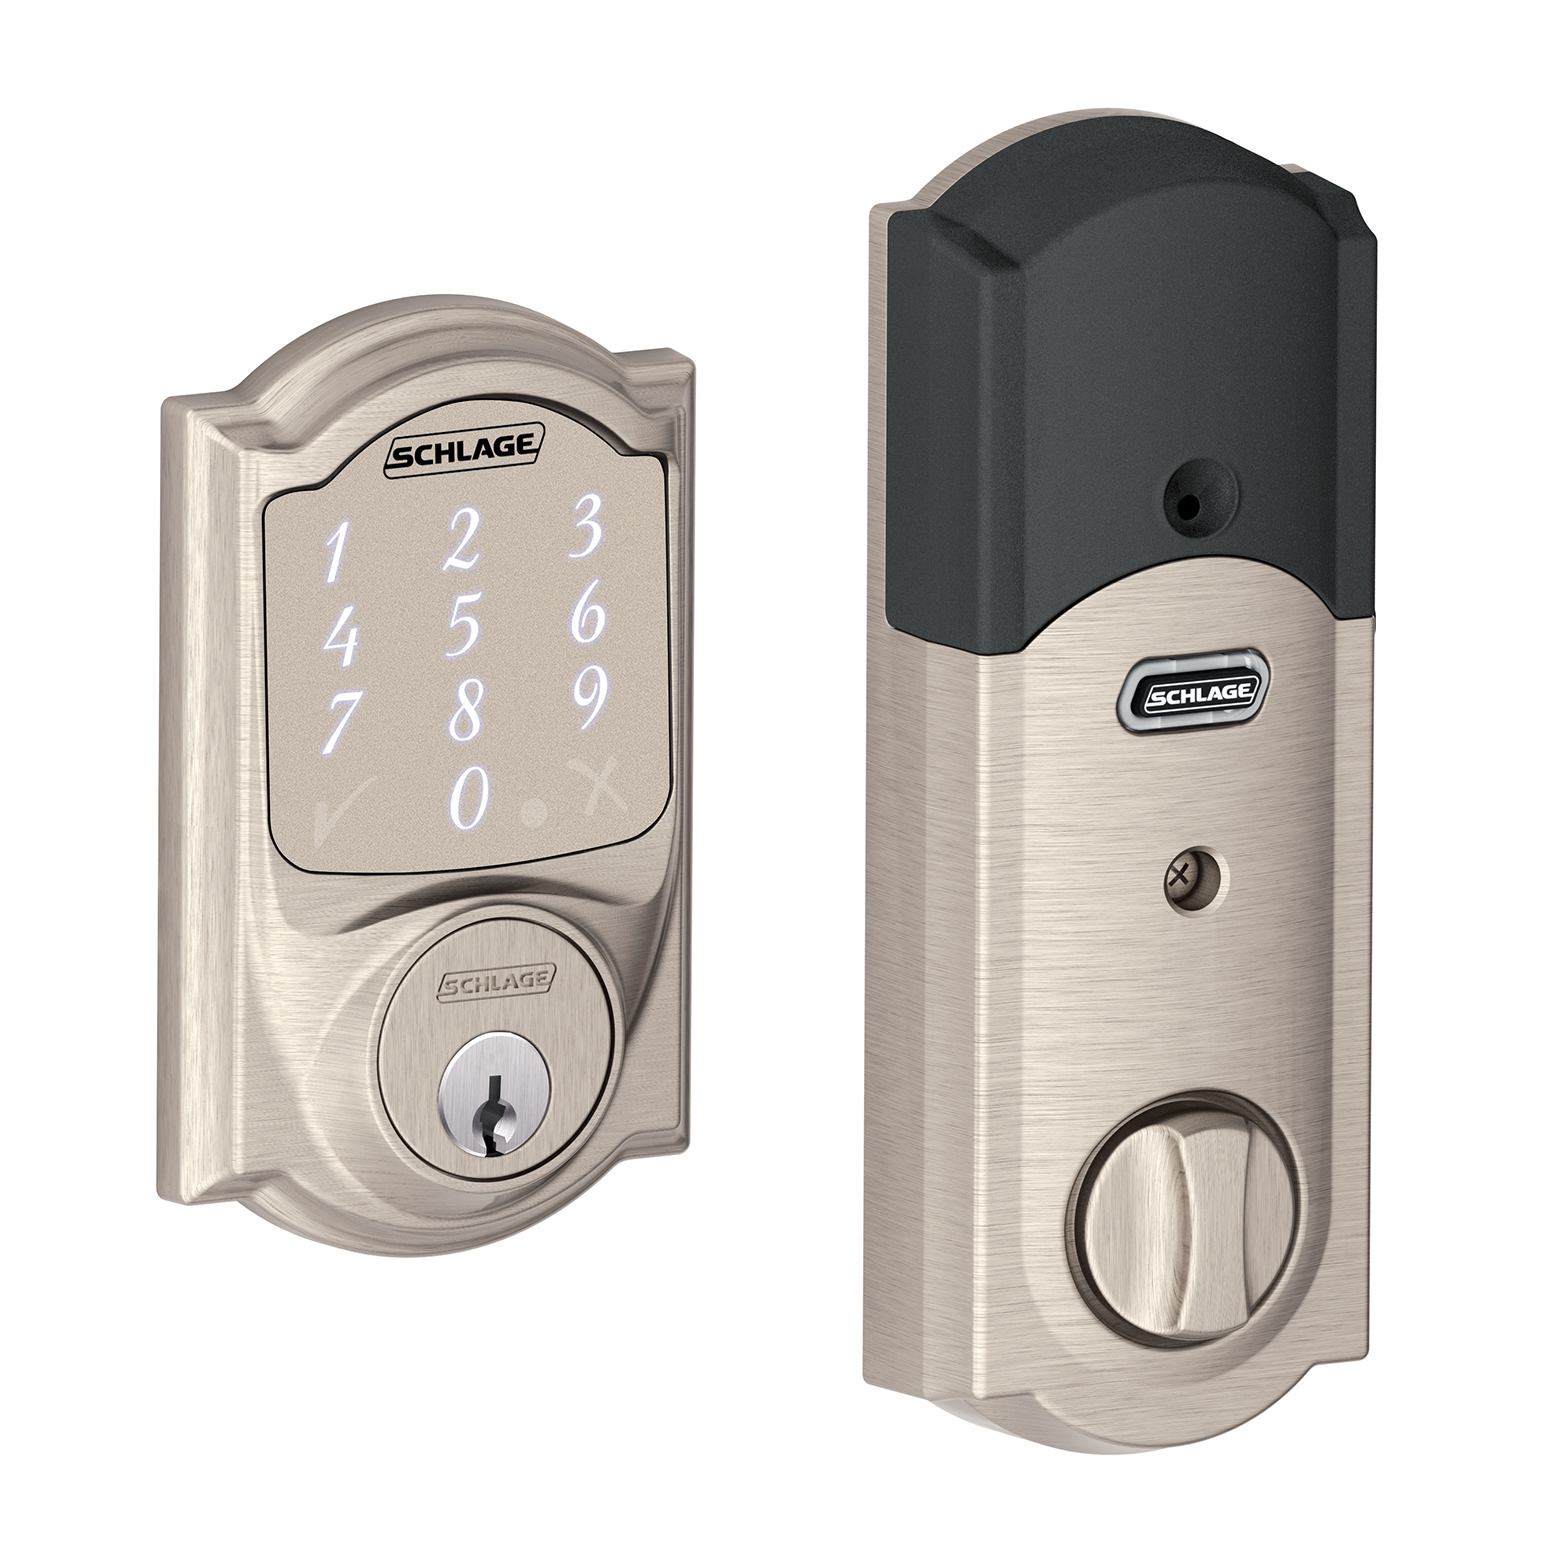 Schlage BE479AACAM619 Satin Nickel Camelot Sense Touch Screen Electronic Deadbolt With Built In Alarm